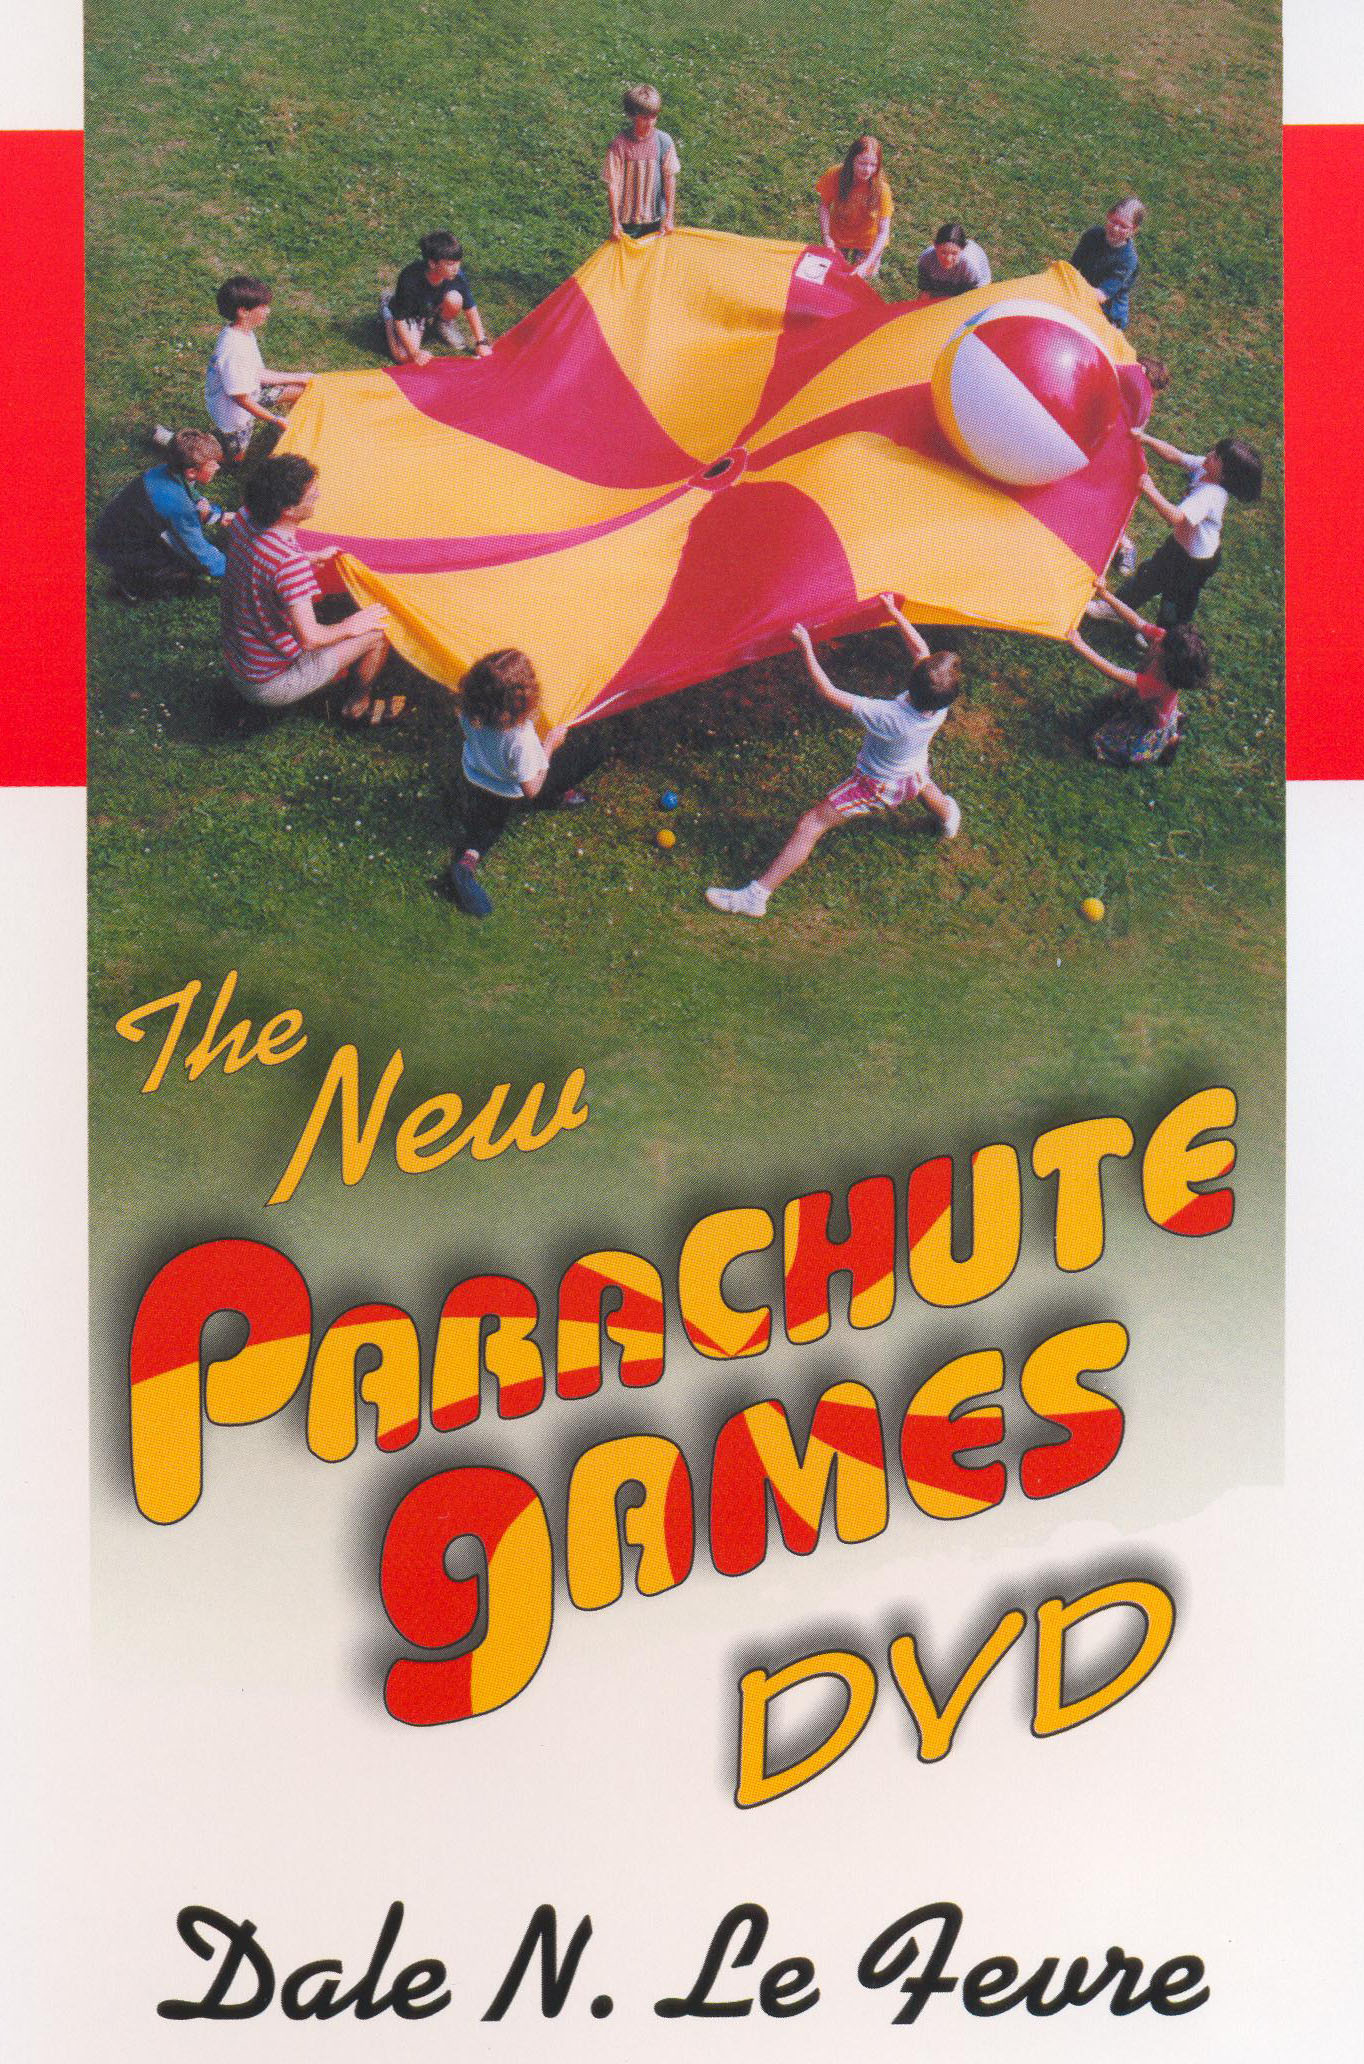 The New Parachute Games